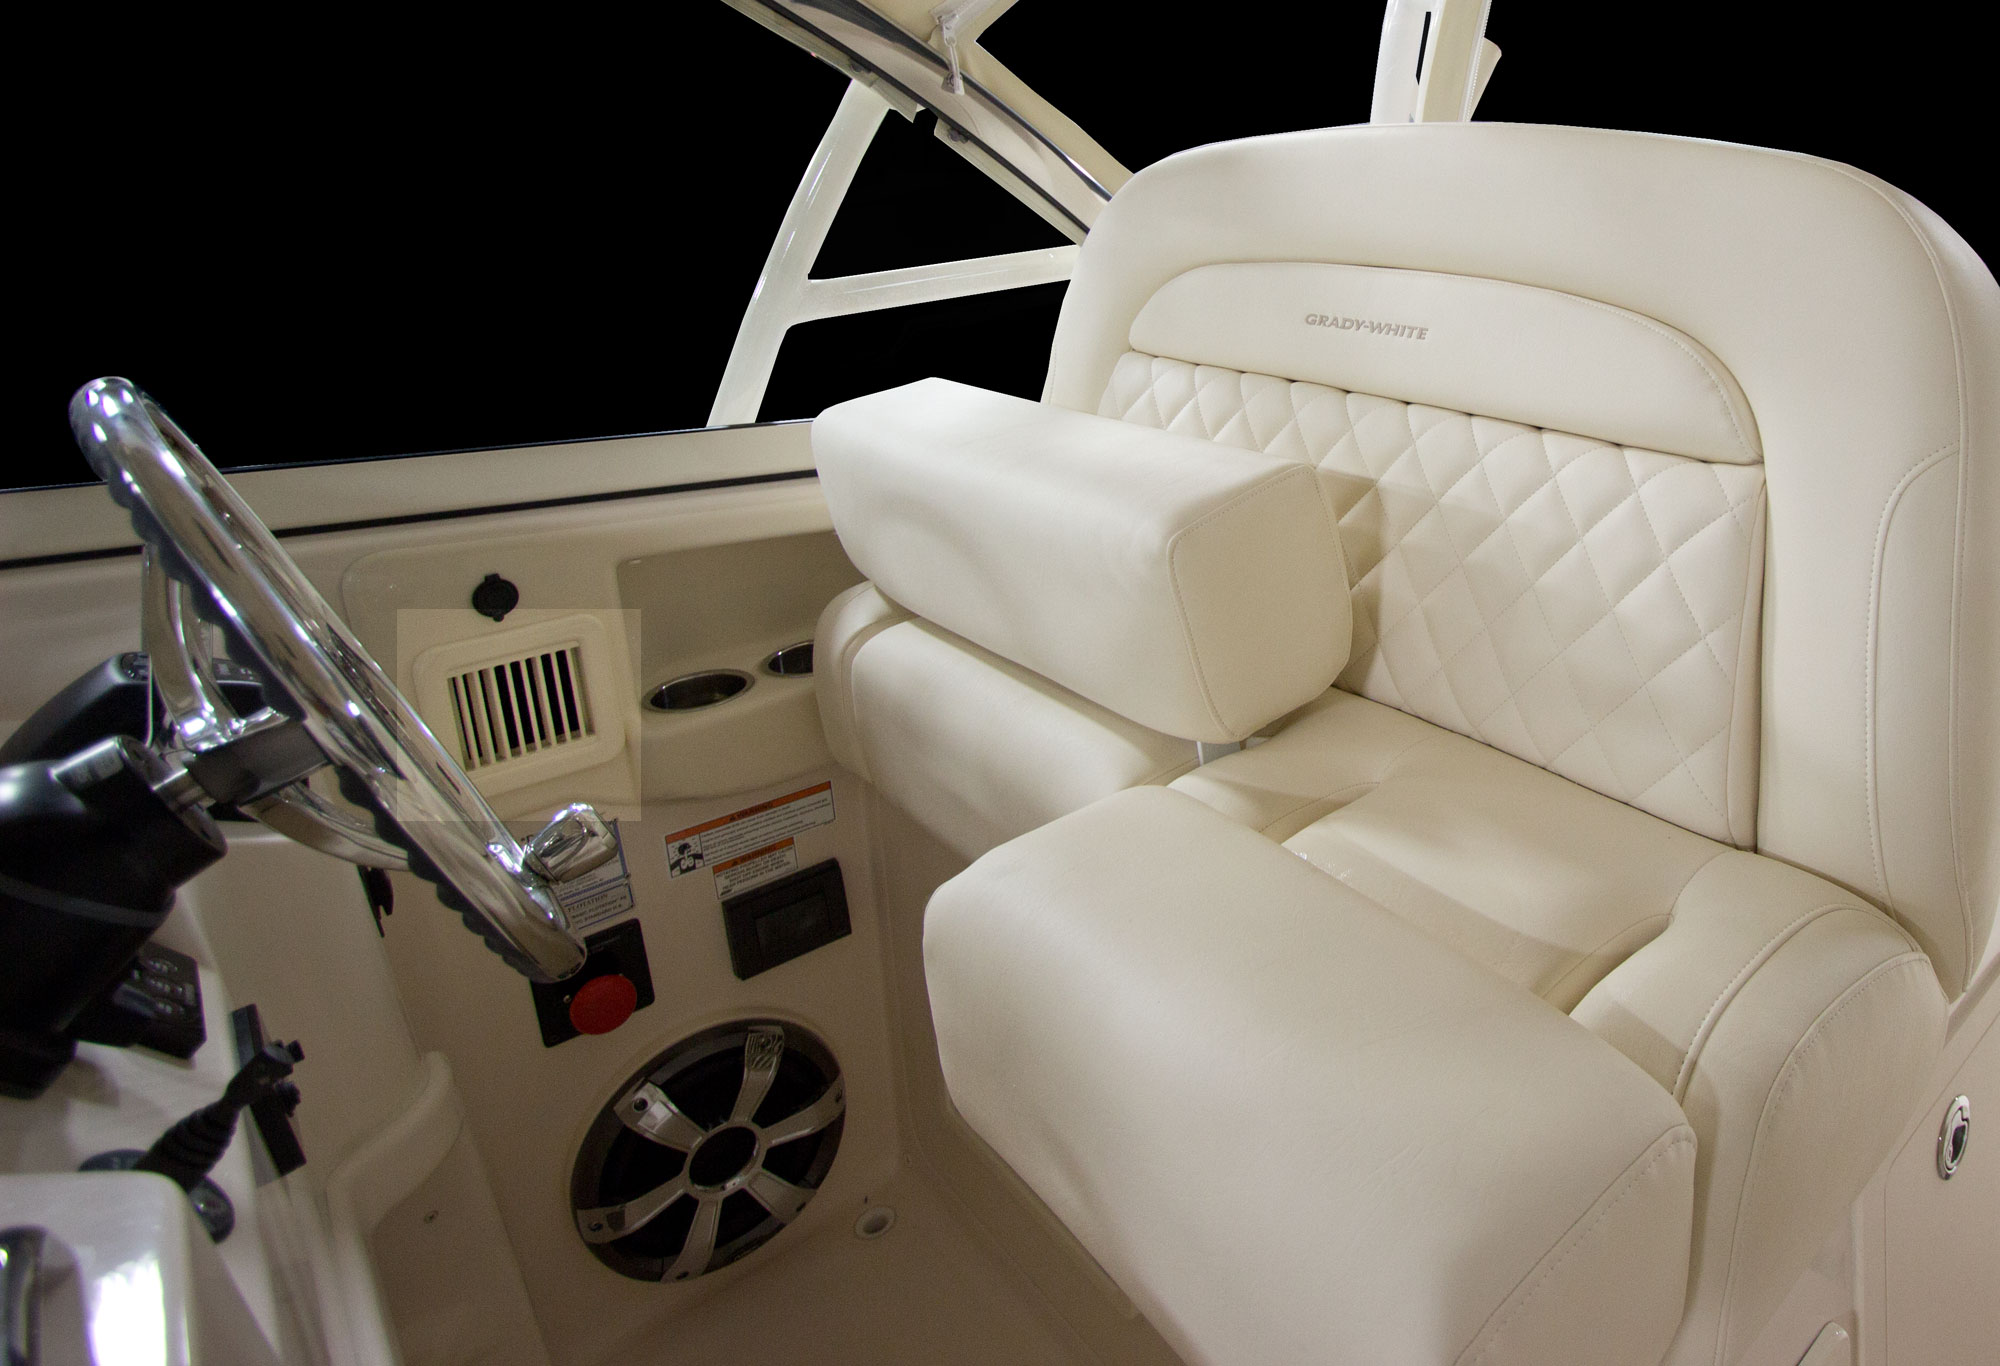 Grady-White Freedom 335 helm air conditioning